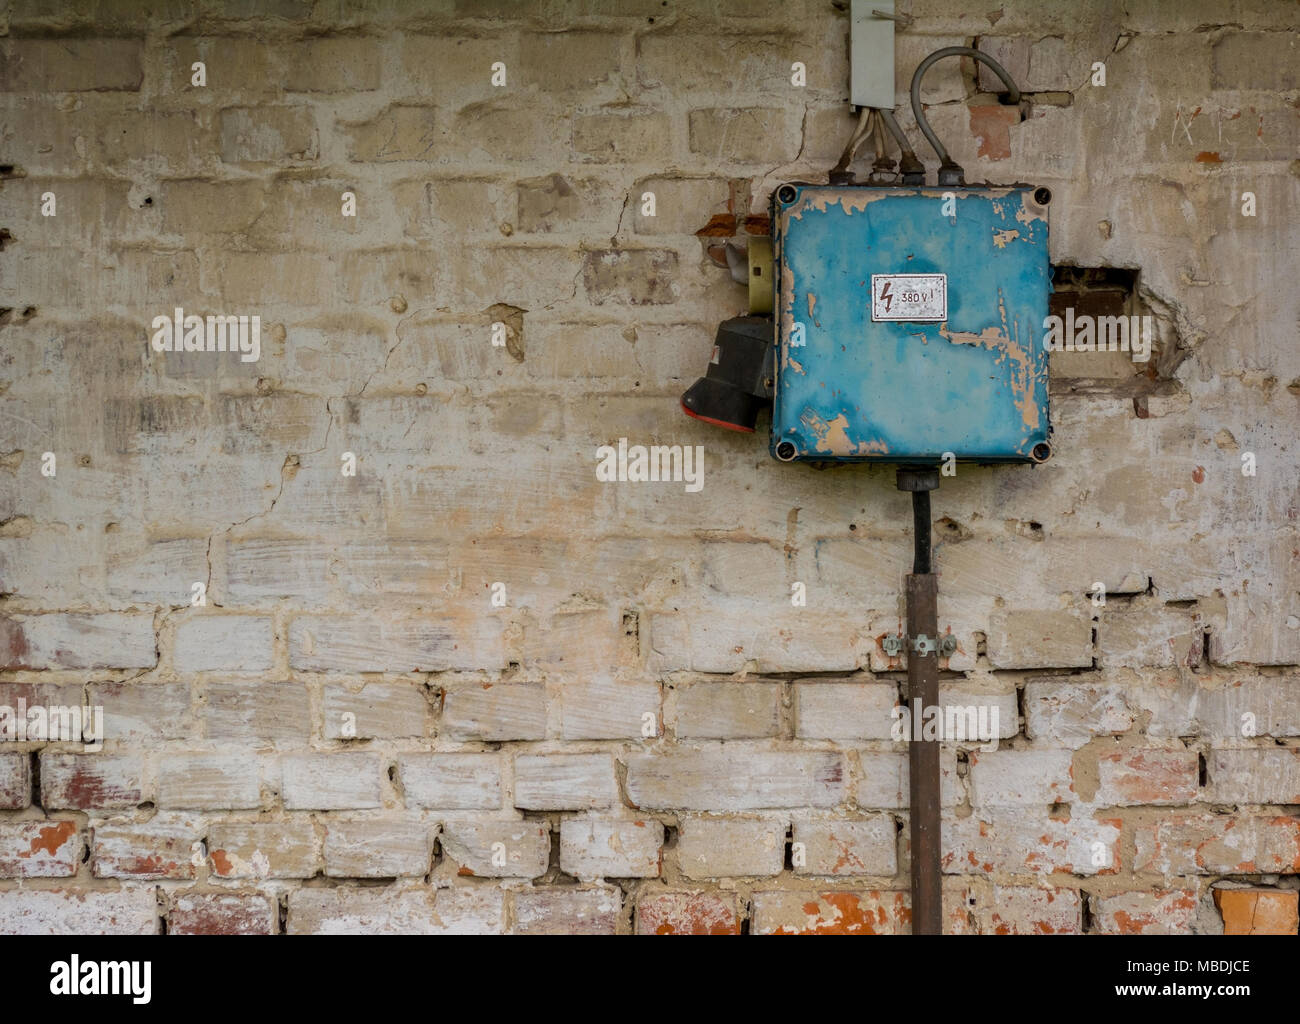 hight resolution of old bad rusty switch box on weathered wall stock image